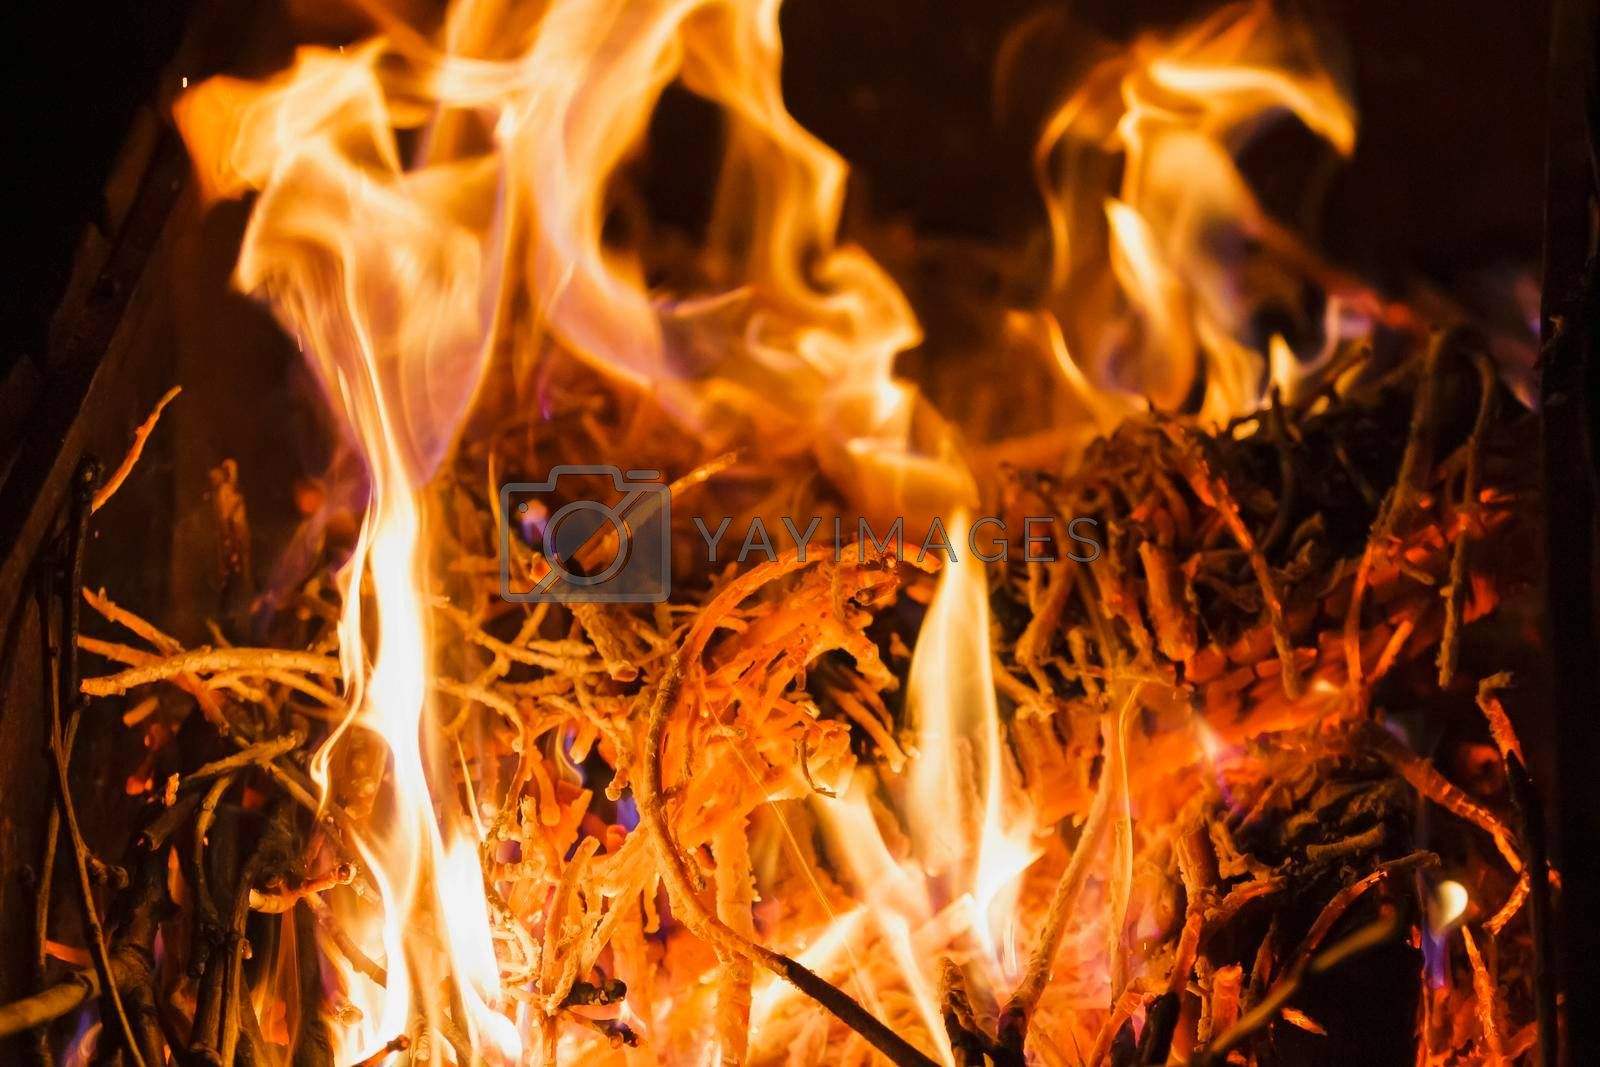 Flame of fire in the dark. The fire burns coals and tree branches.